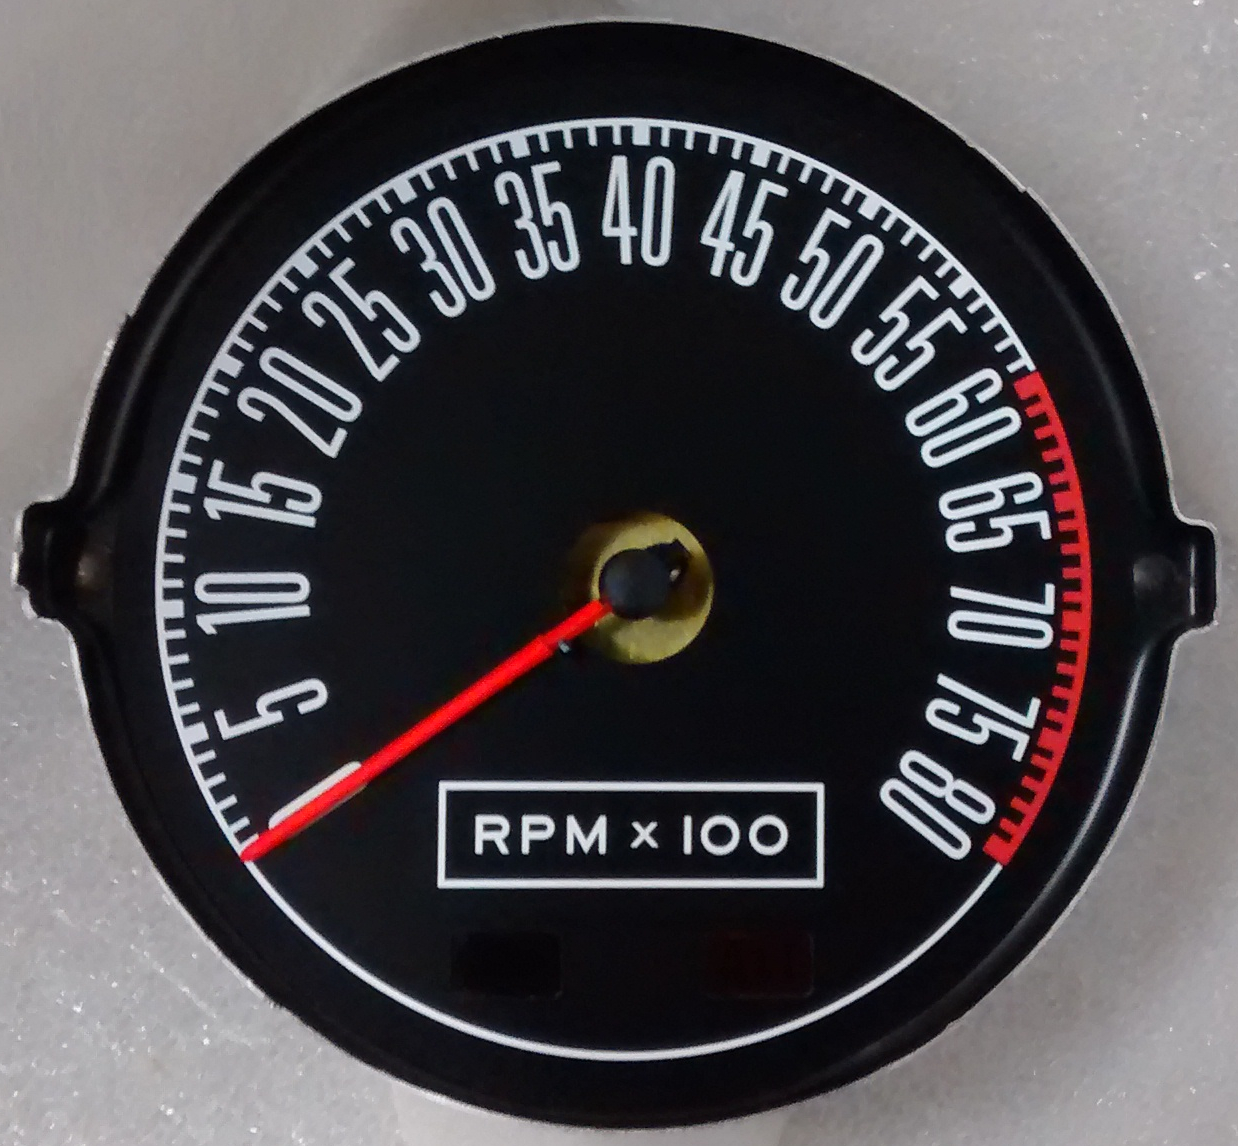 Tachometer Wiring For 68 Mercury Cougar Xr7 Trusted Diagrams 67 Xr 7 Rocketmans Classic Innovations Interior